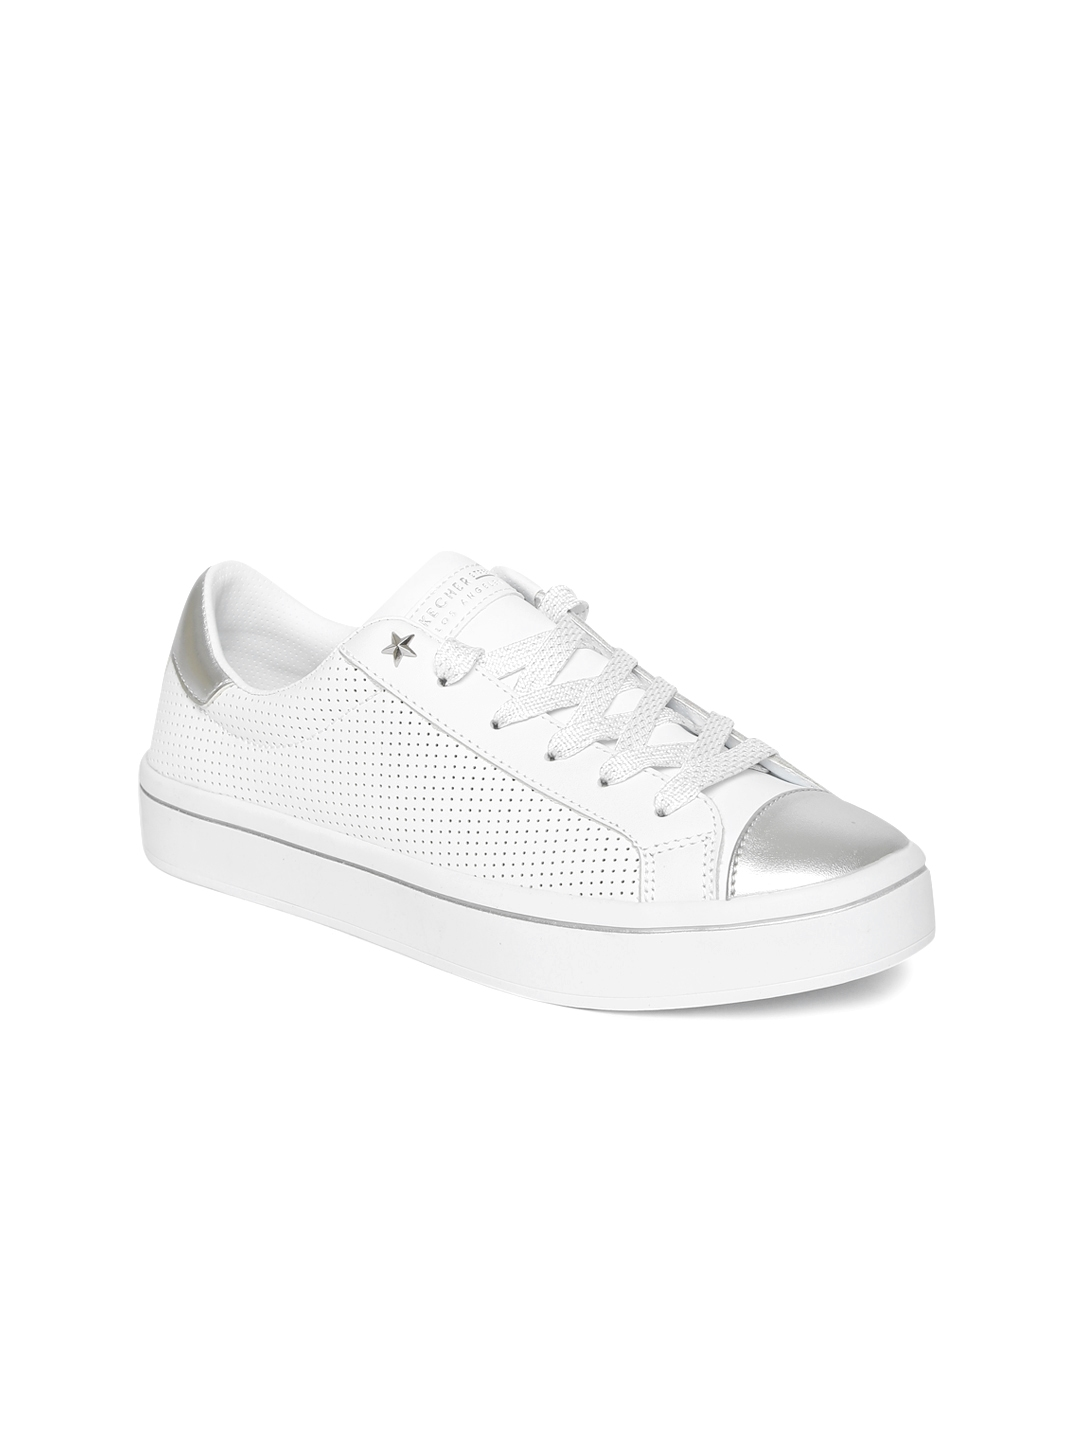 34715c92af77 Skechers Women White   Silver-Toned Leather HI LITE MAGNETOES Sneakers